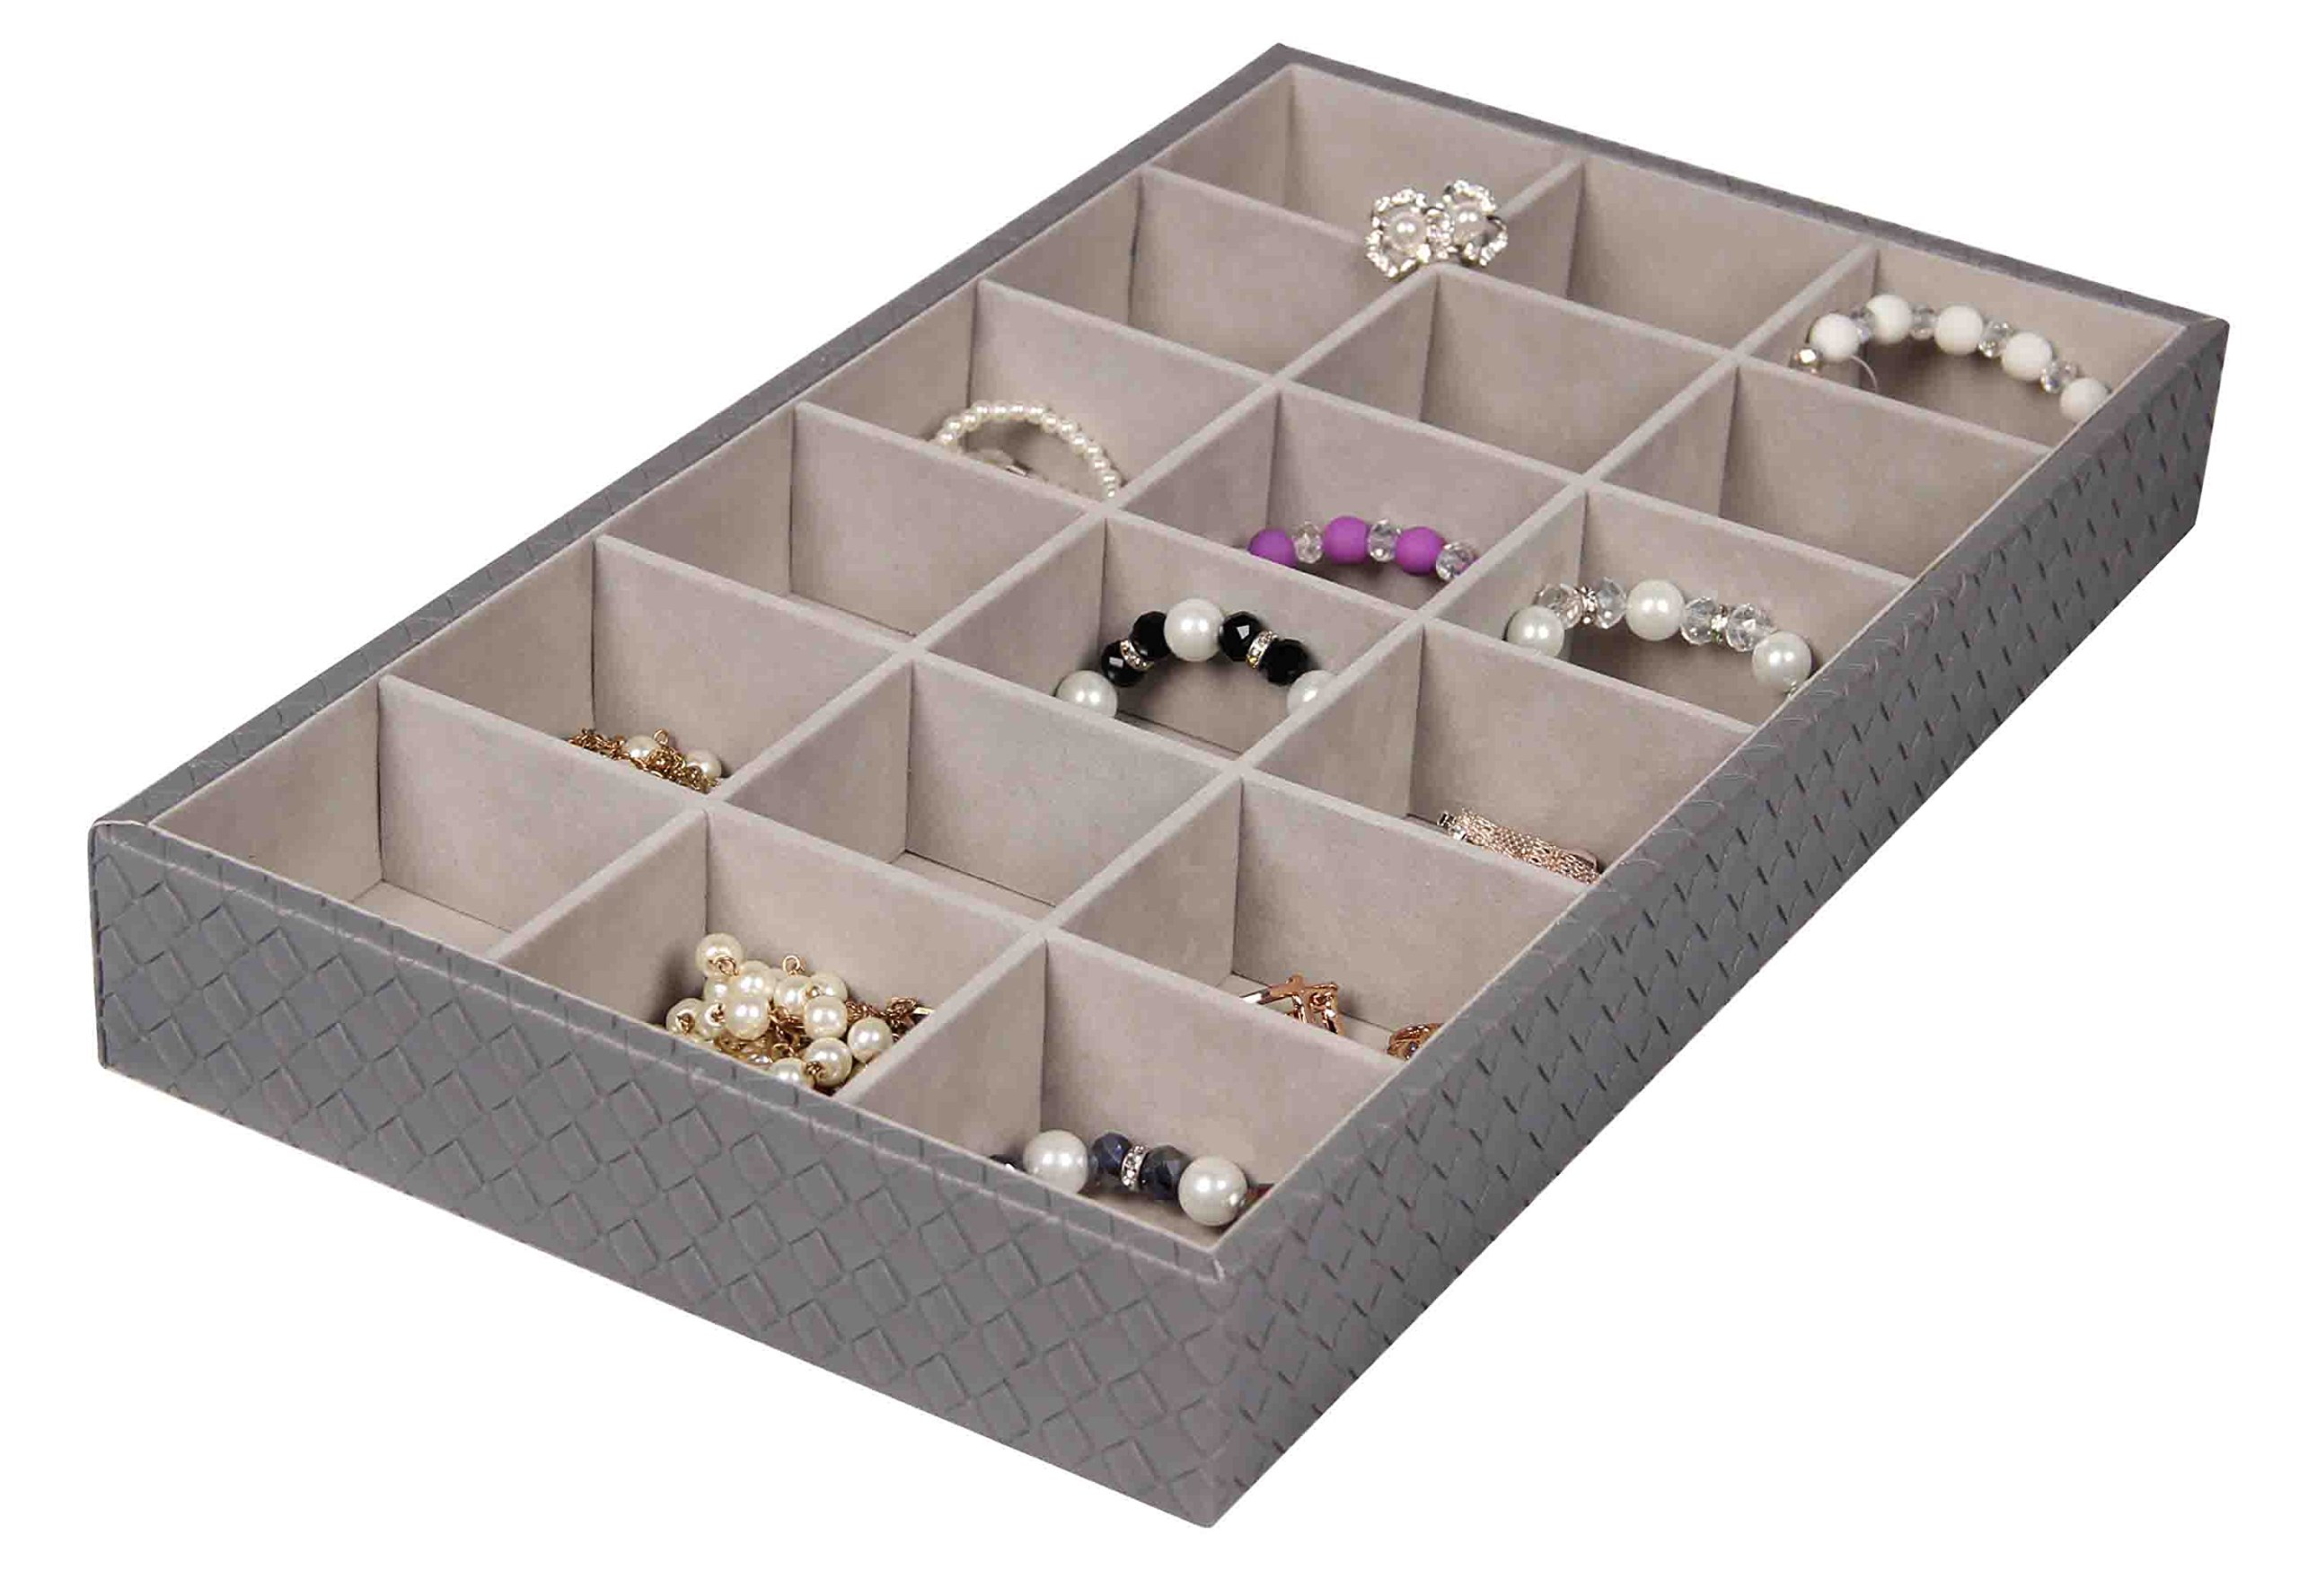 Home Basics Sectional Faux Leather Charcoal Grey Jewelry Organizer (18 Compartment)